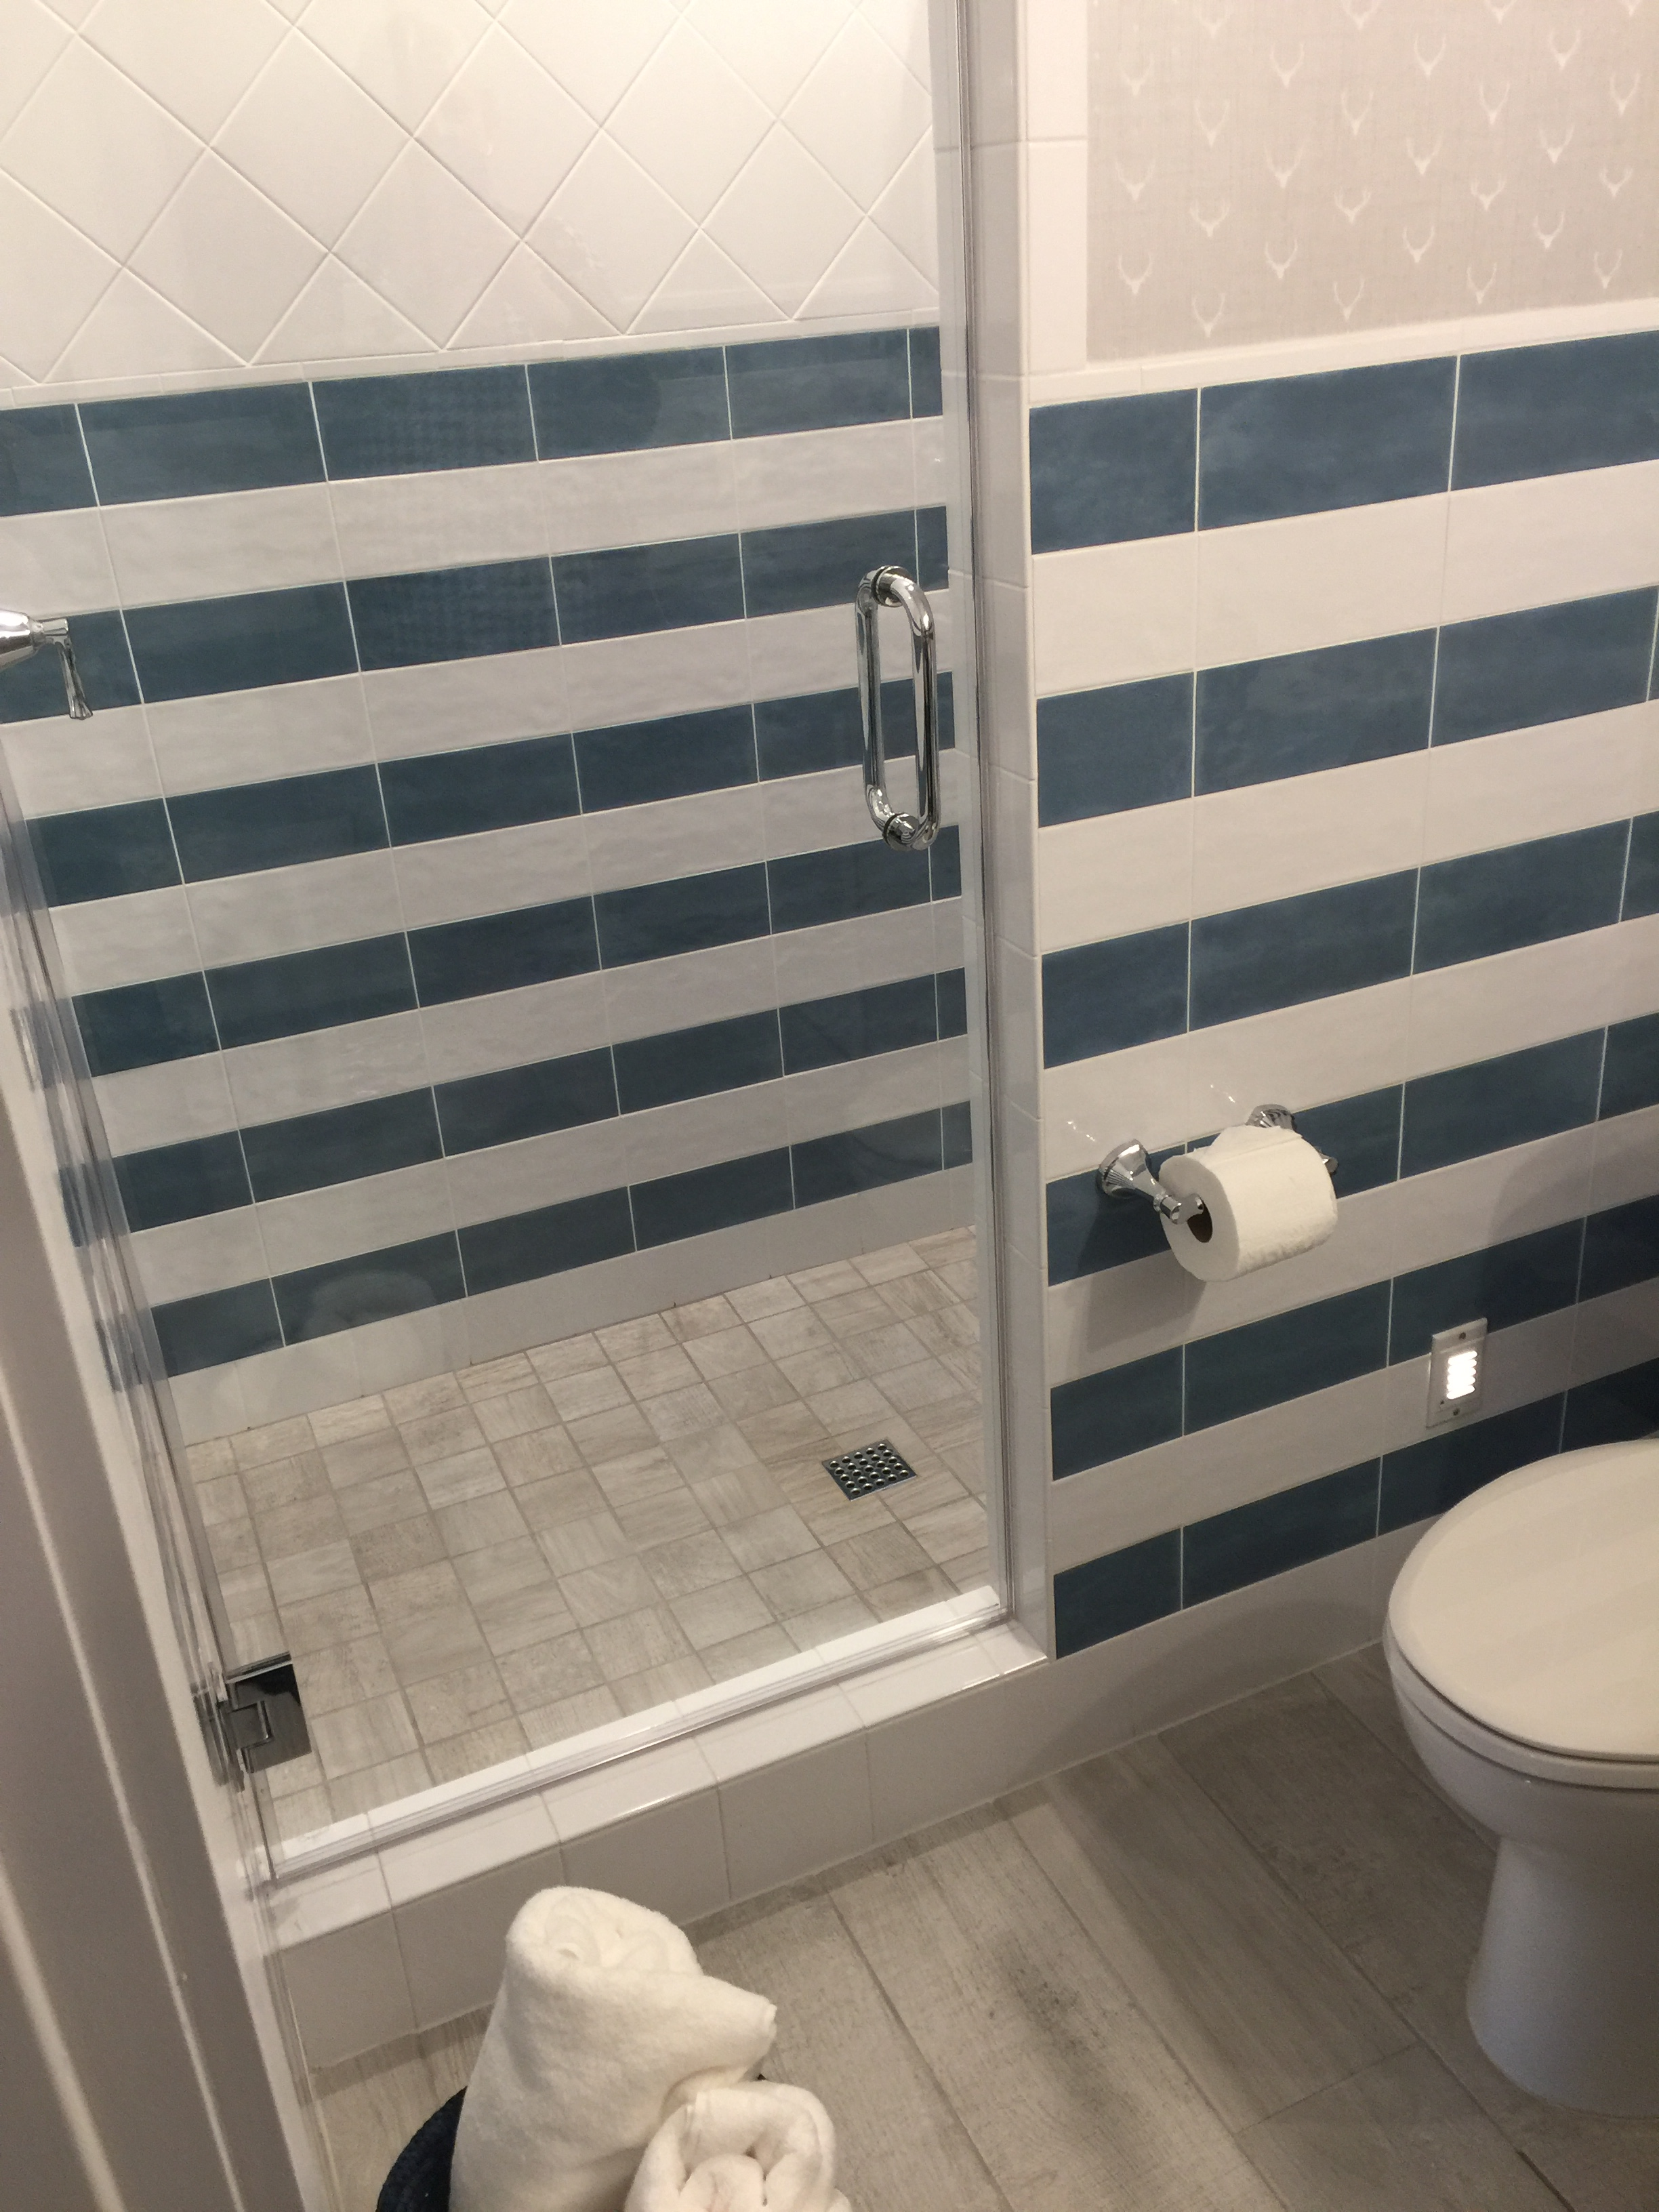 Unique stripe tiled bathroom - Southern Living Showcase Home, Designed by Chairma Design Group